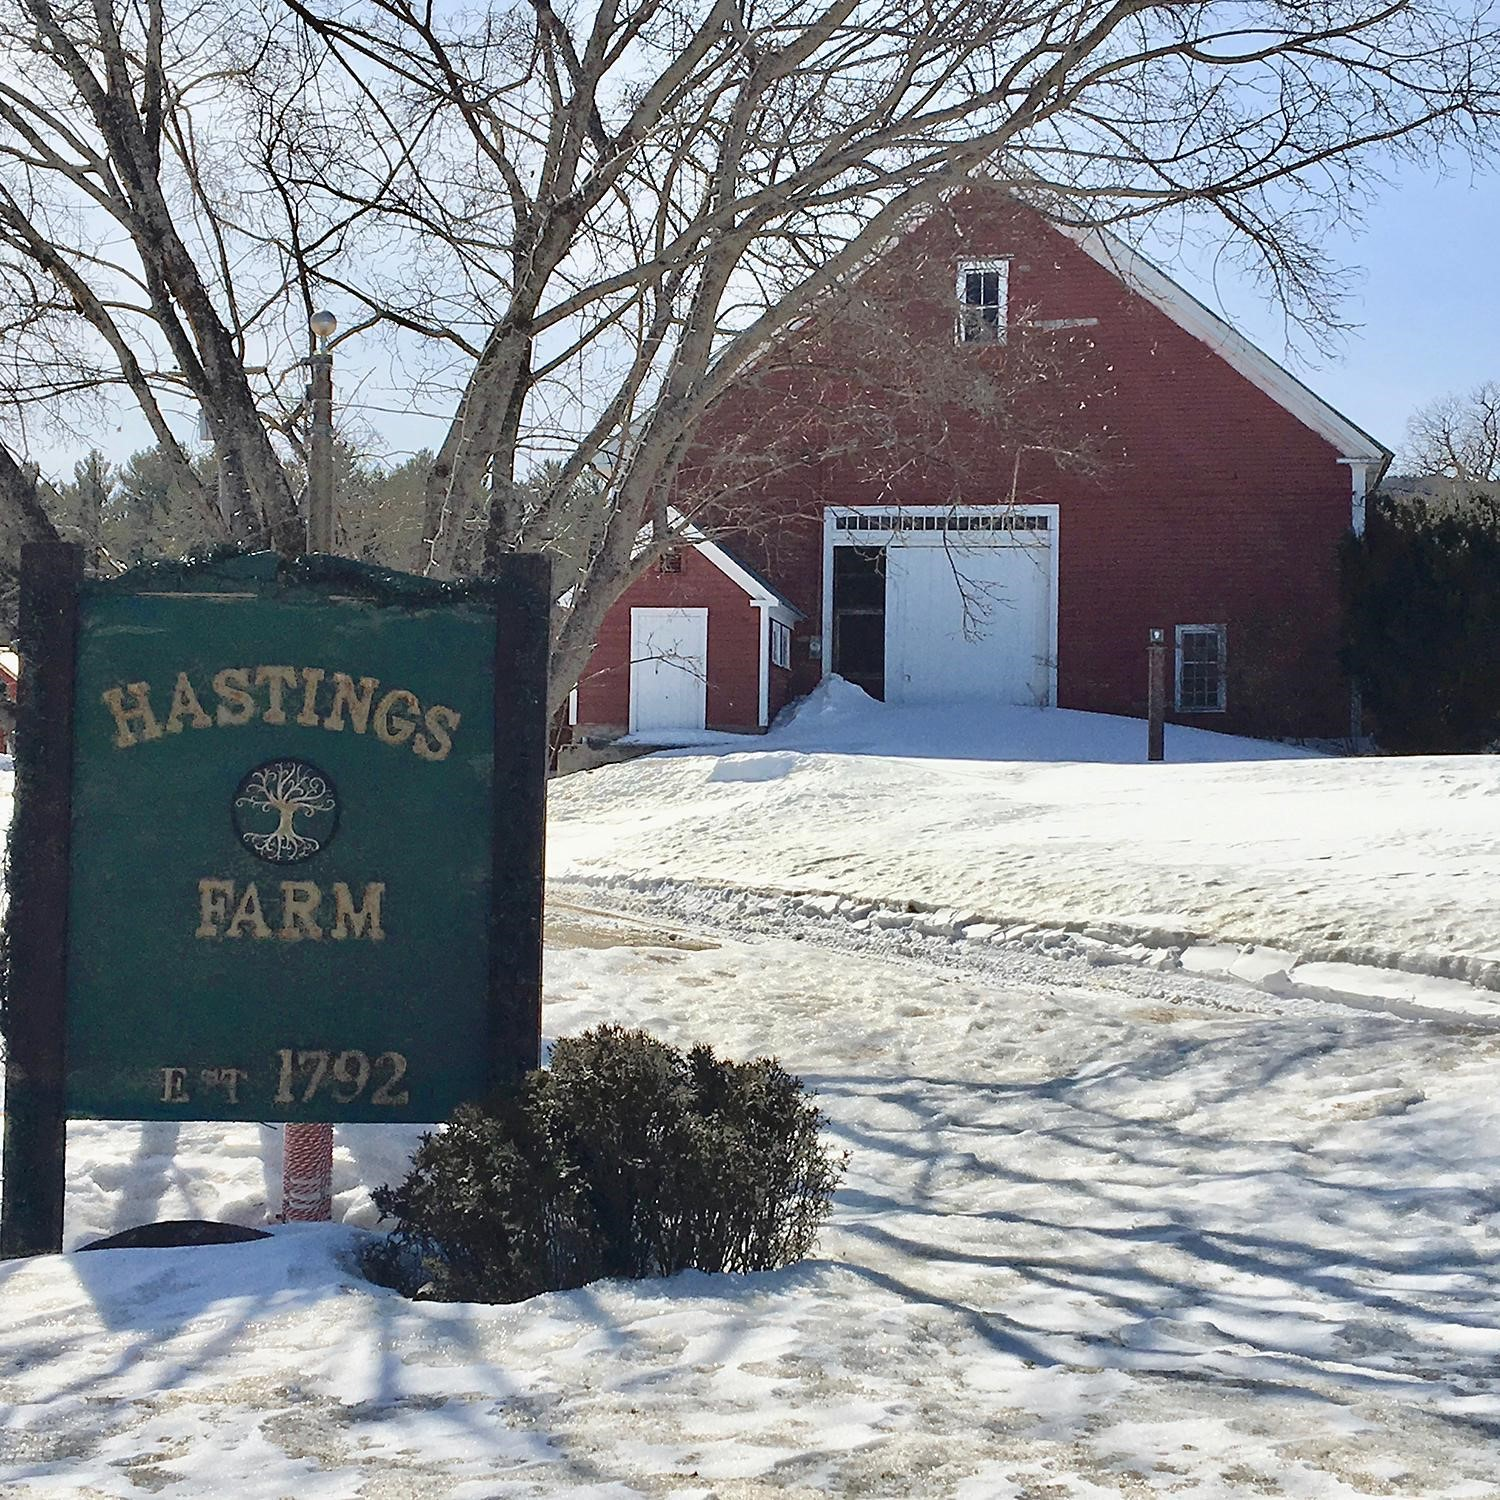 hastings farm.jpg